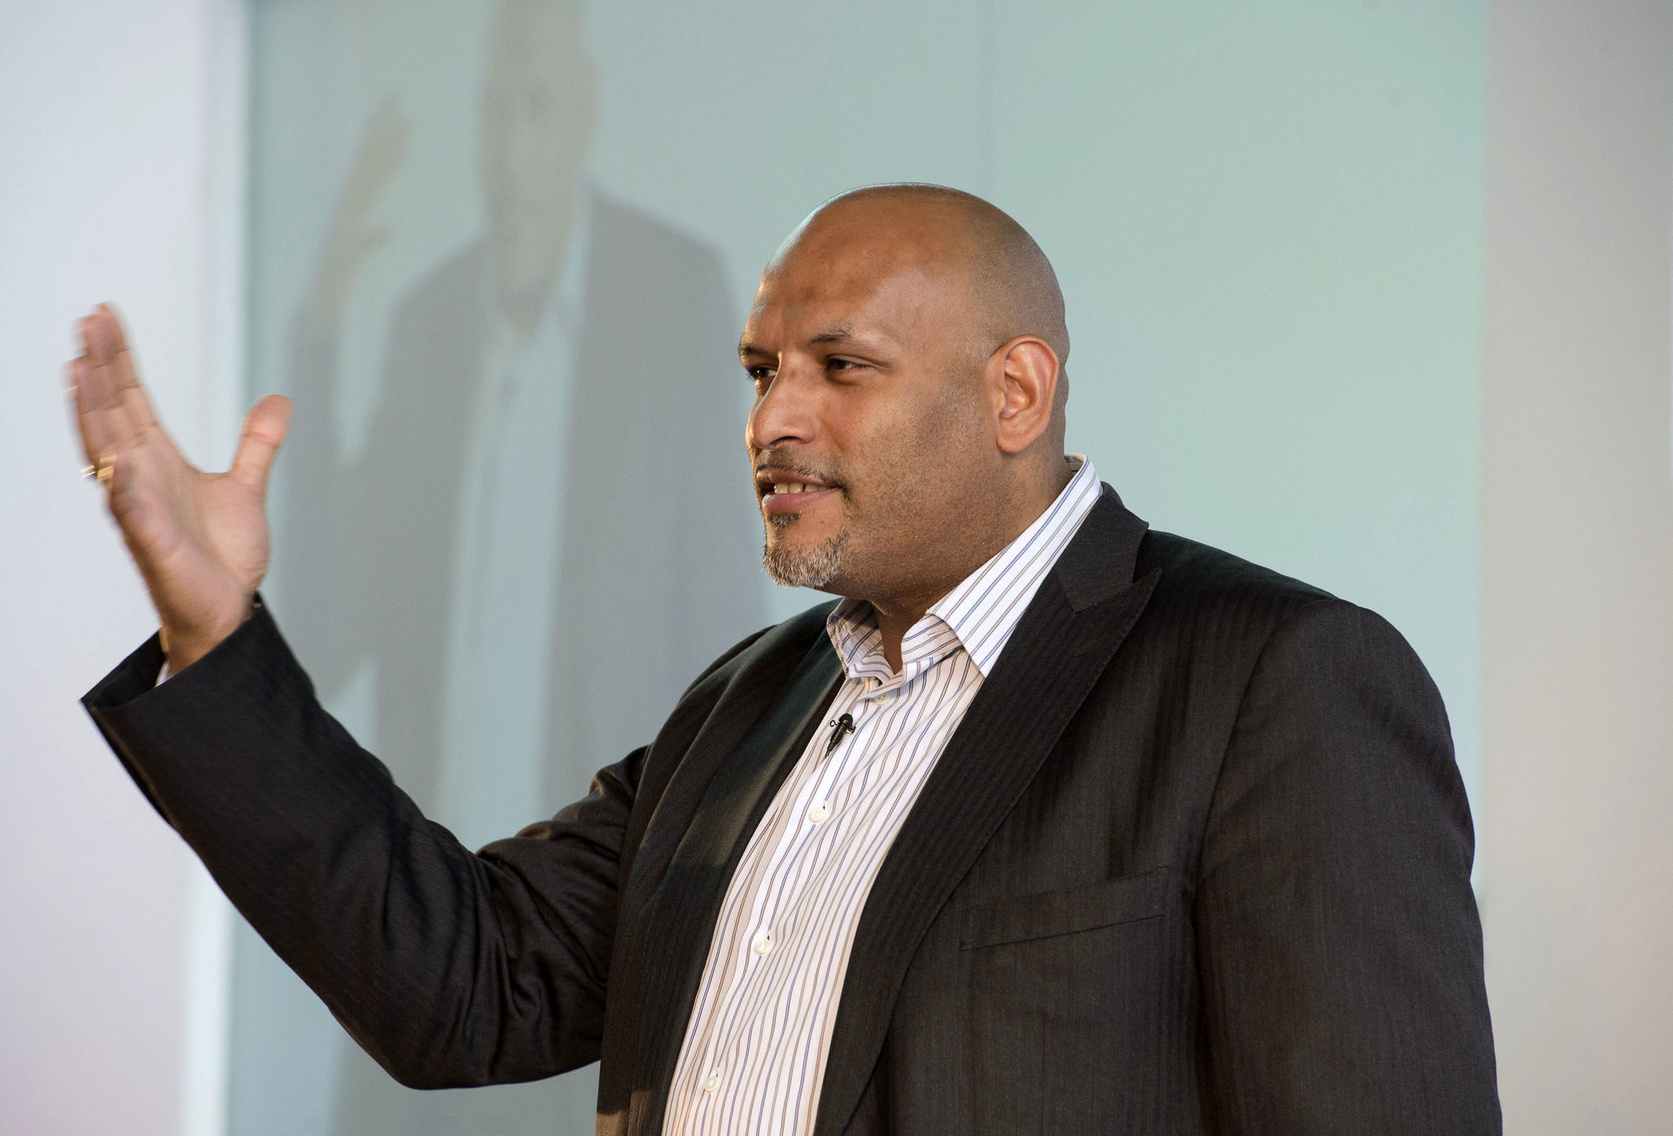 Former NBA pro and and psychologist John Amaechi gave a talk on the evidence around unconscious bias training.